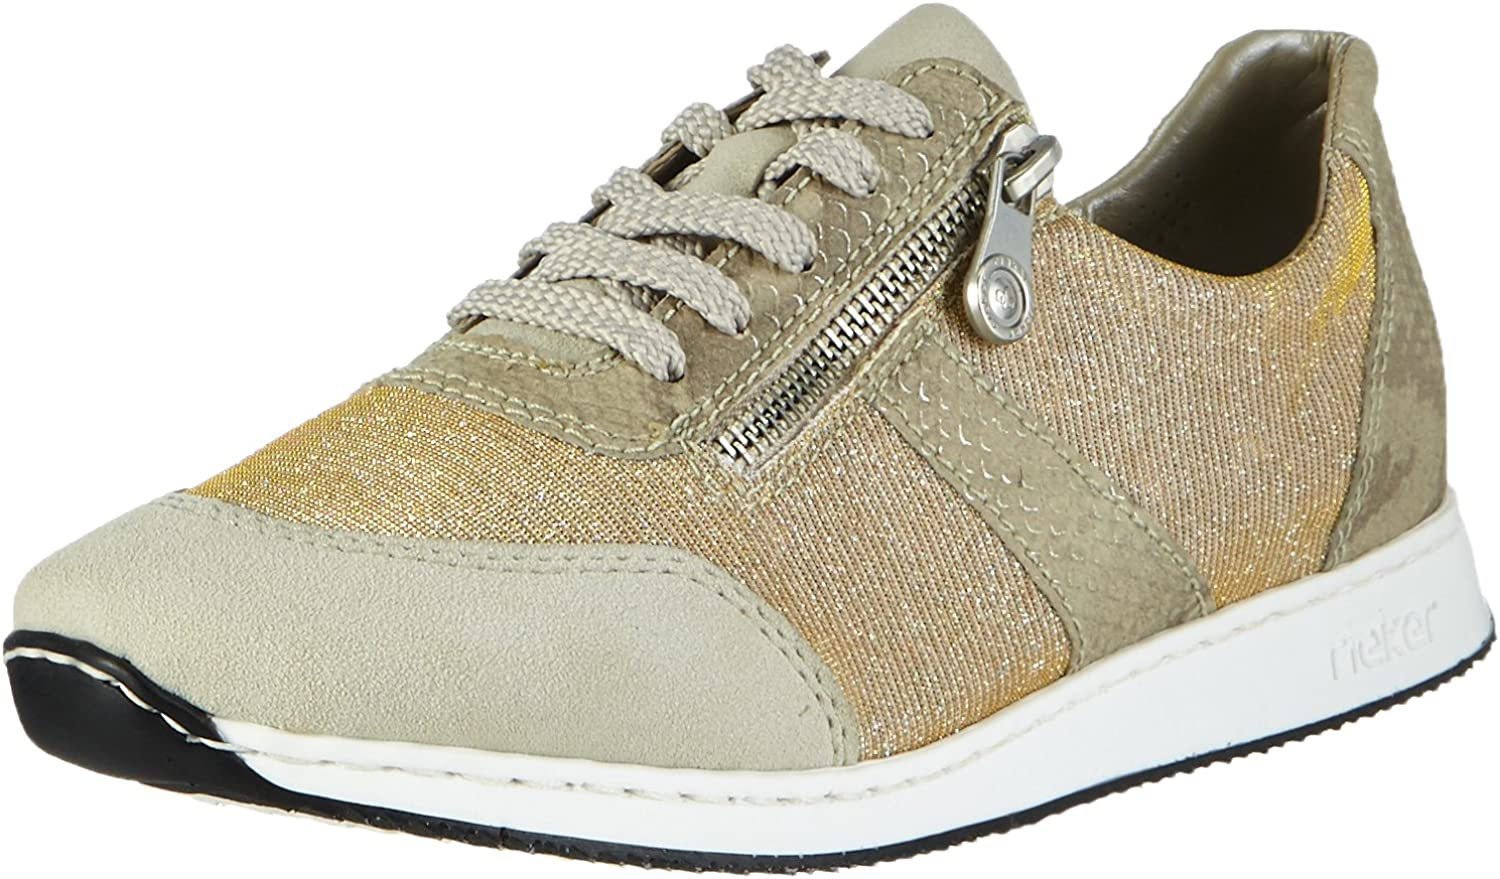 Rieker 56011 Women Low-top, Women's Low-Top Sneakers